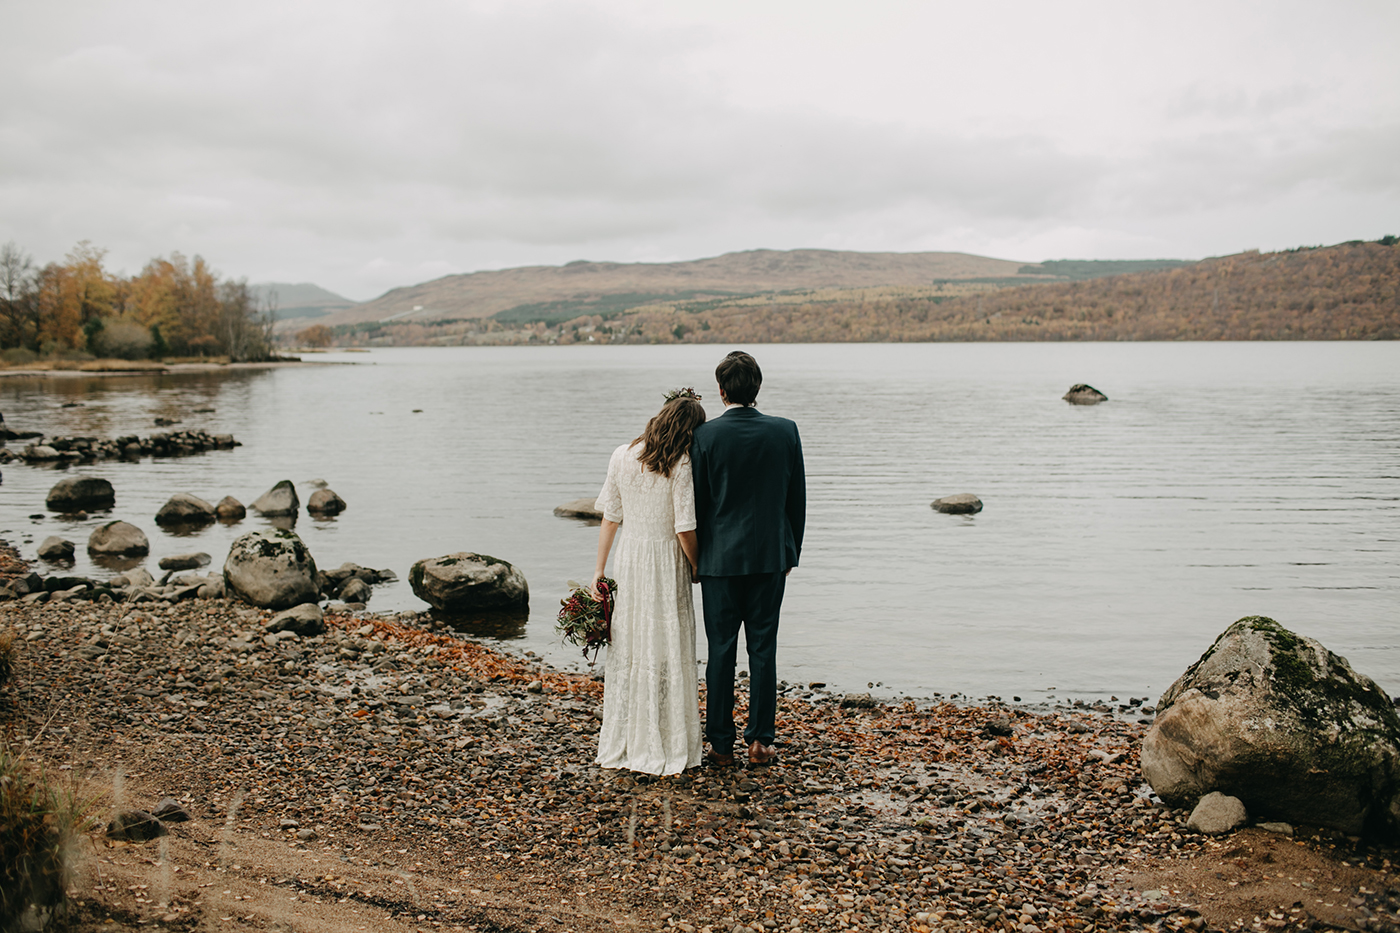 loch-lomond-wedding-photographer-sarahlongworth.jpg